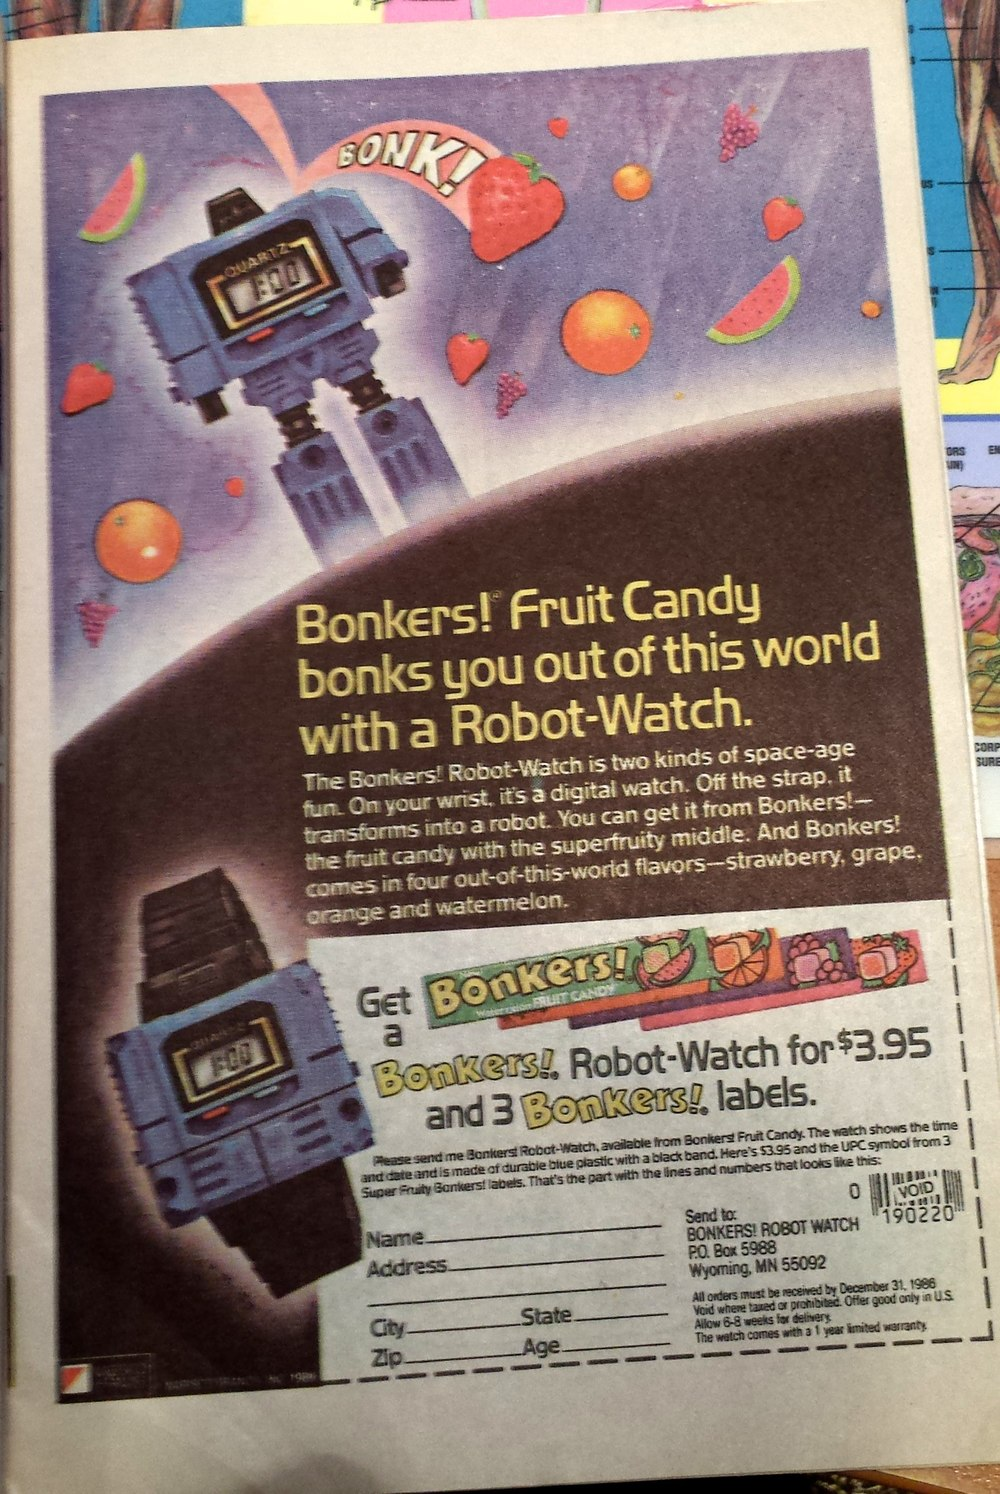 BONK! This fruit candy was all about dropping comically swollen pieces of fruit on your head. And robot watches.